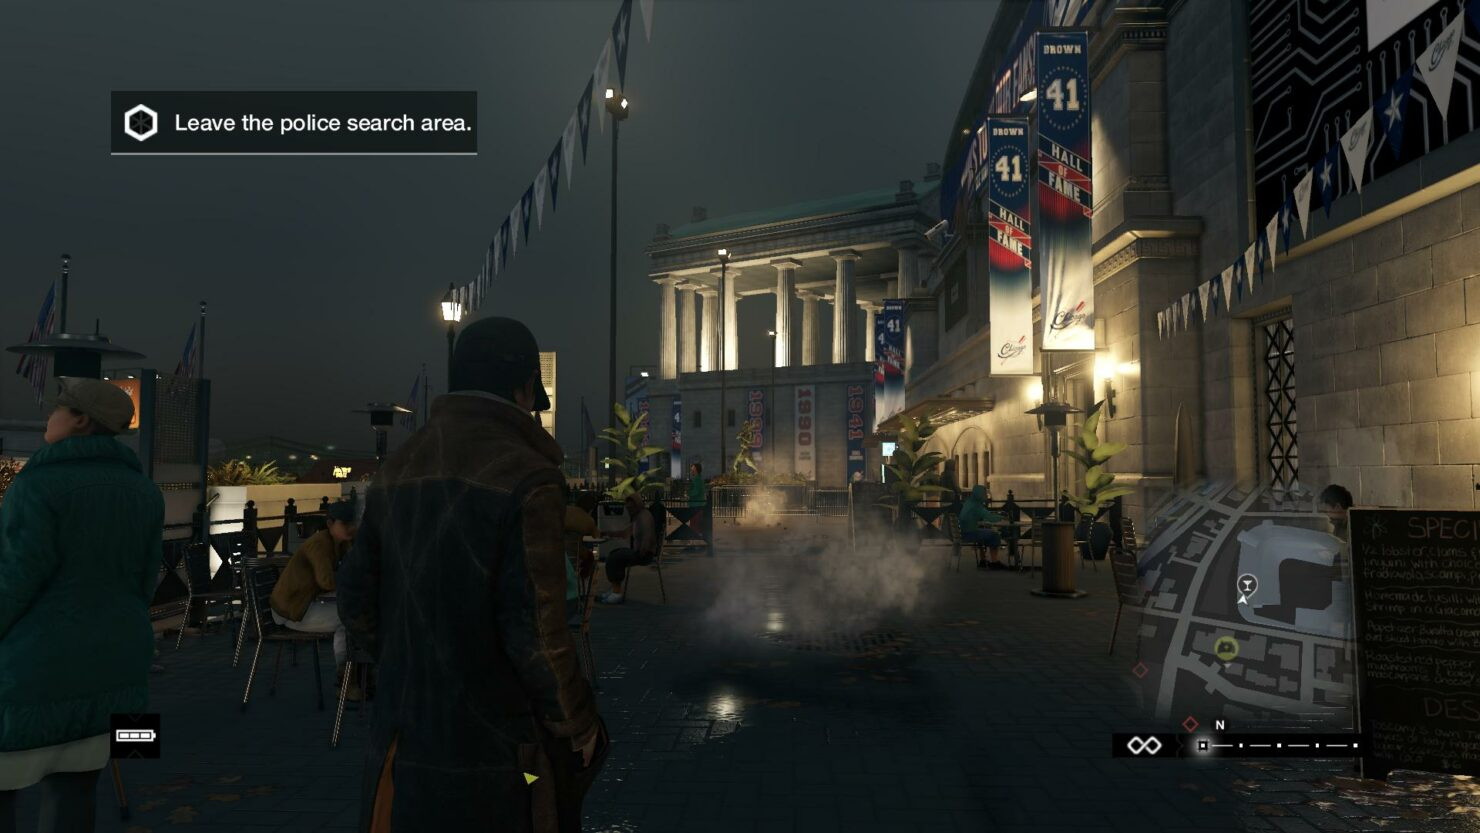 watch_dogs-2014-05-24-11-30-49-06